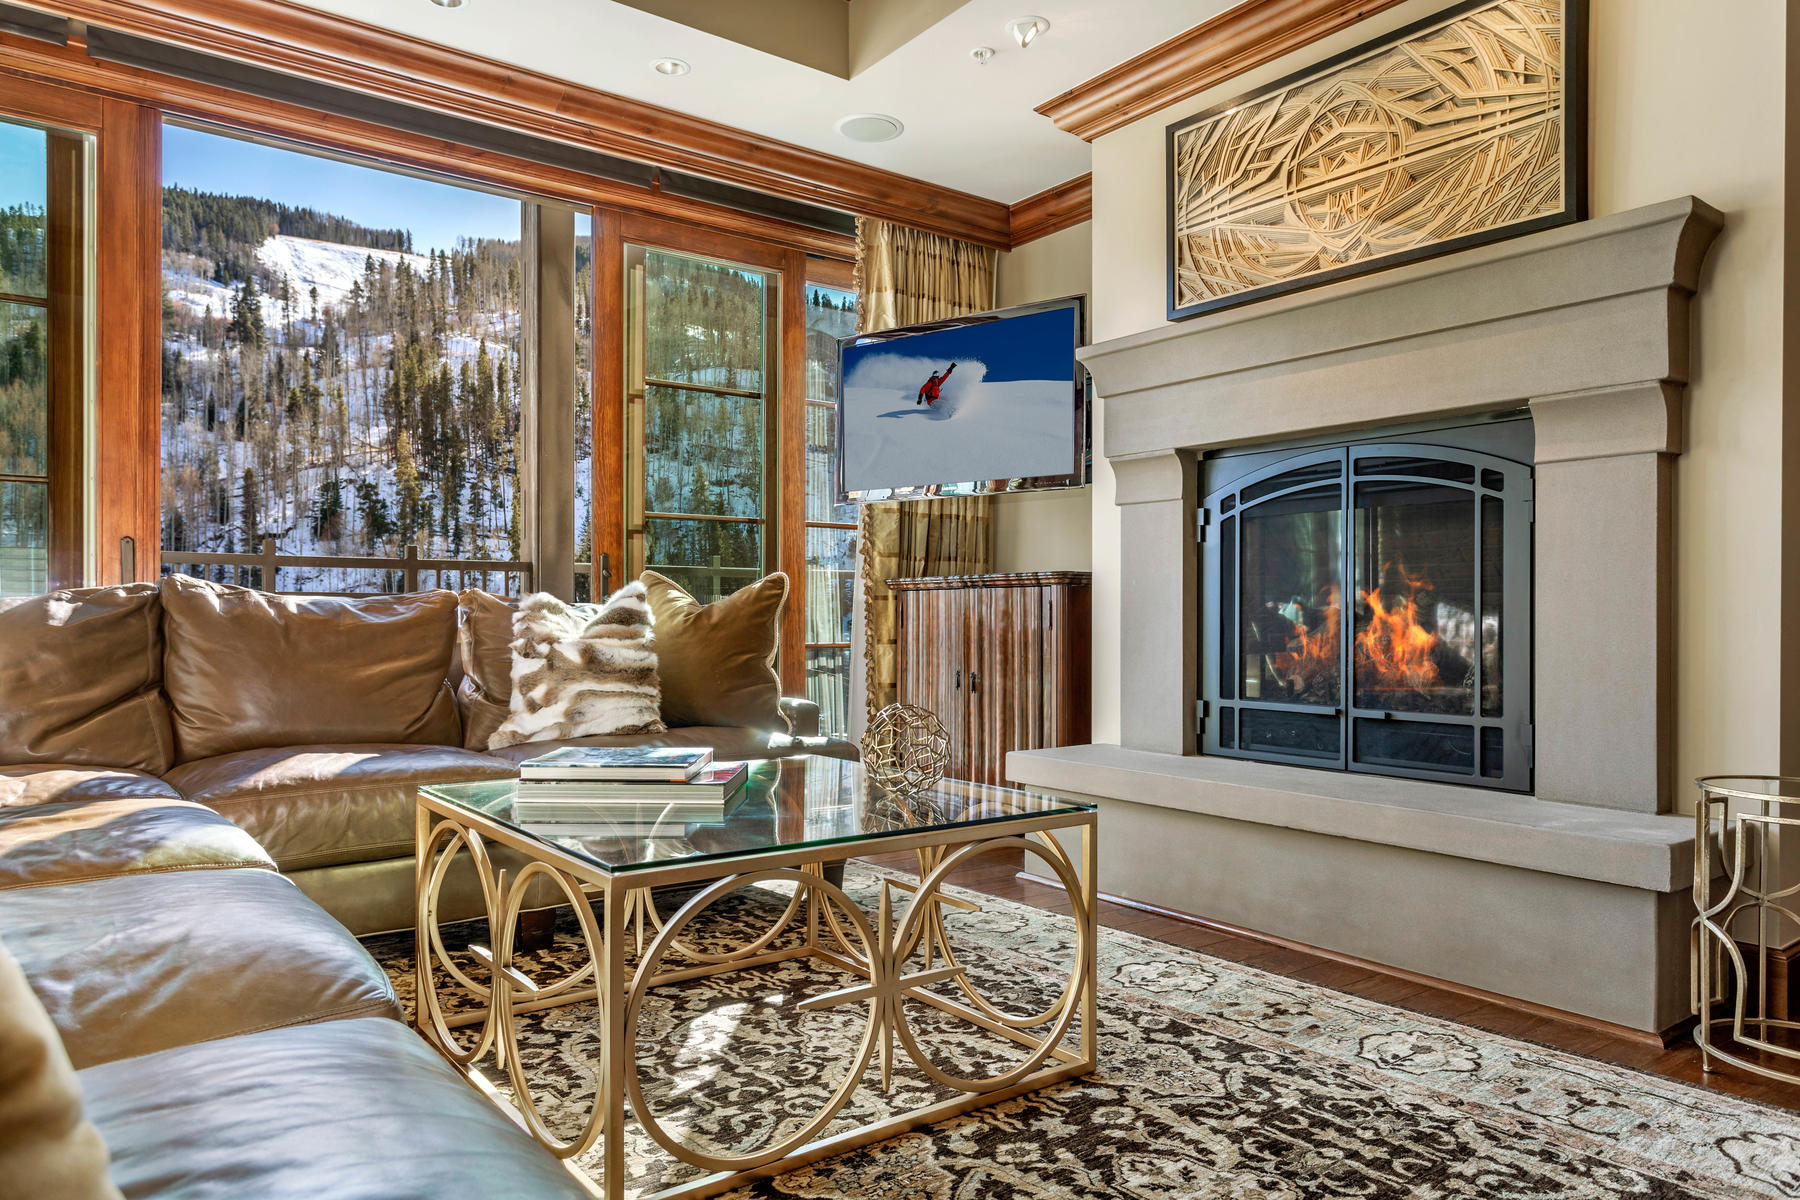 Condominiums for Sale at The Ritz-Carlton Residences R-517 728 West Lionshead Circle R-517 Vail, Colorado 81657 United States